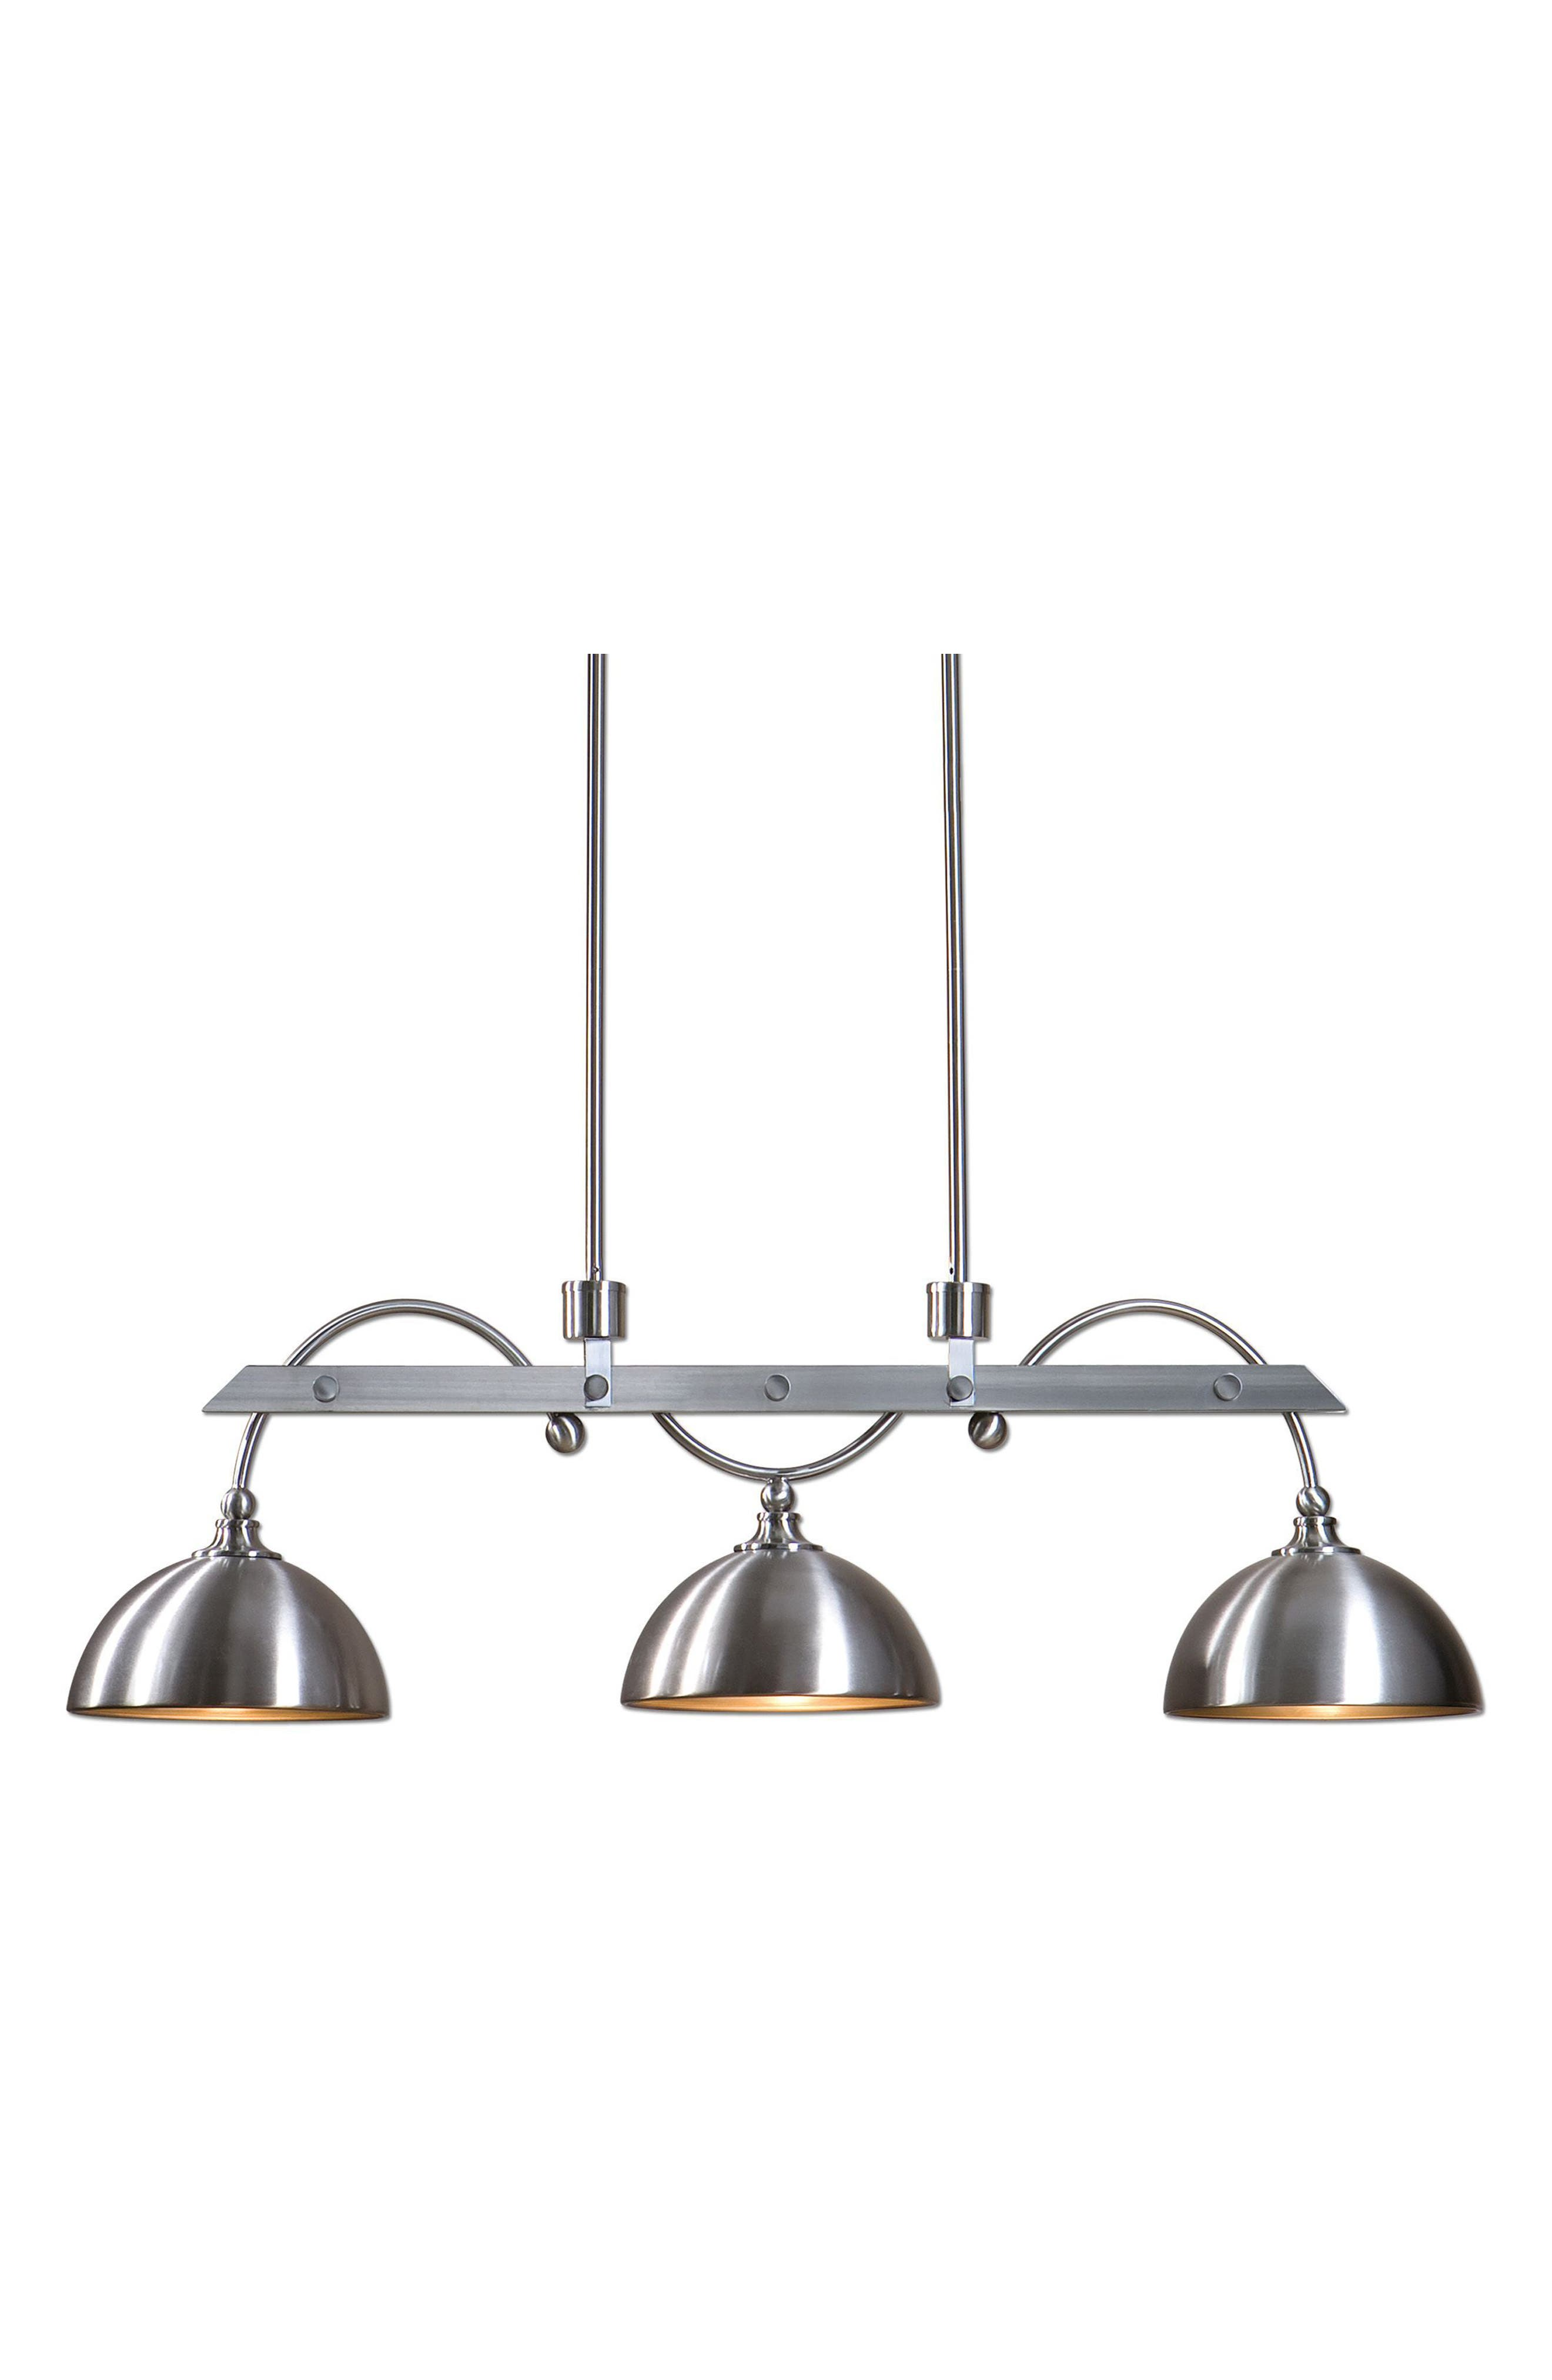 Alternate Image 1 Selected - Uttermost Malcolm Three-Light Fixture